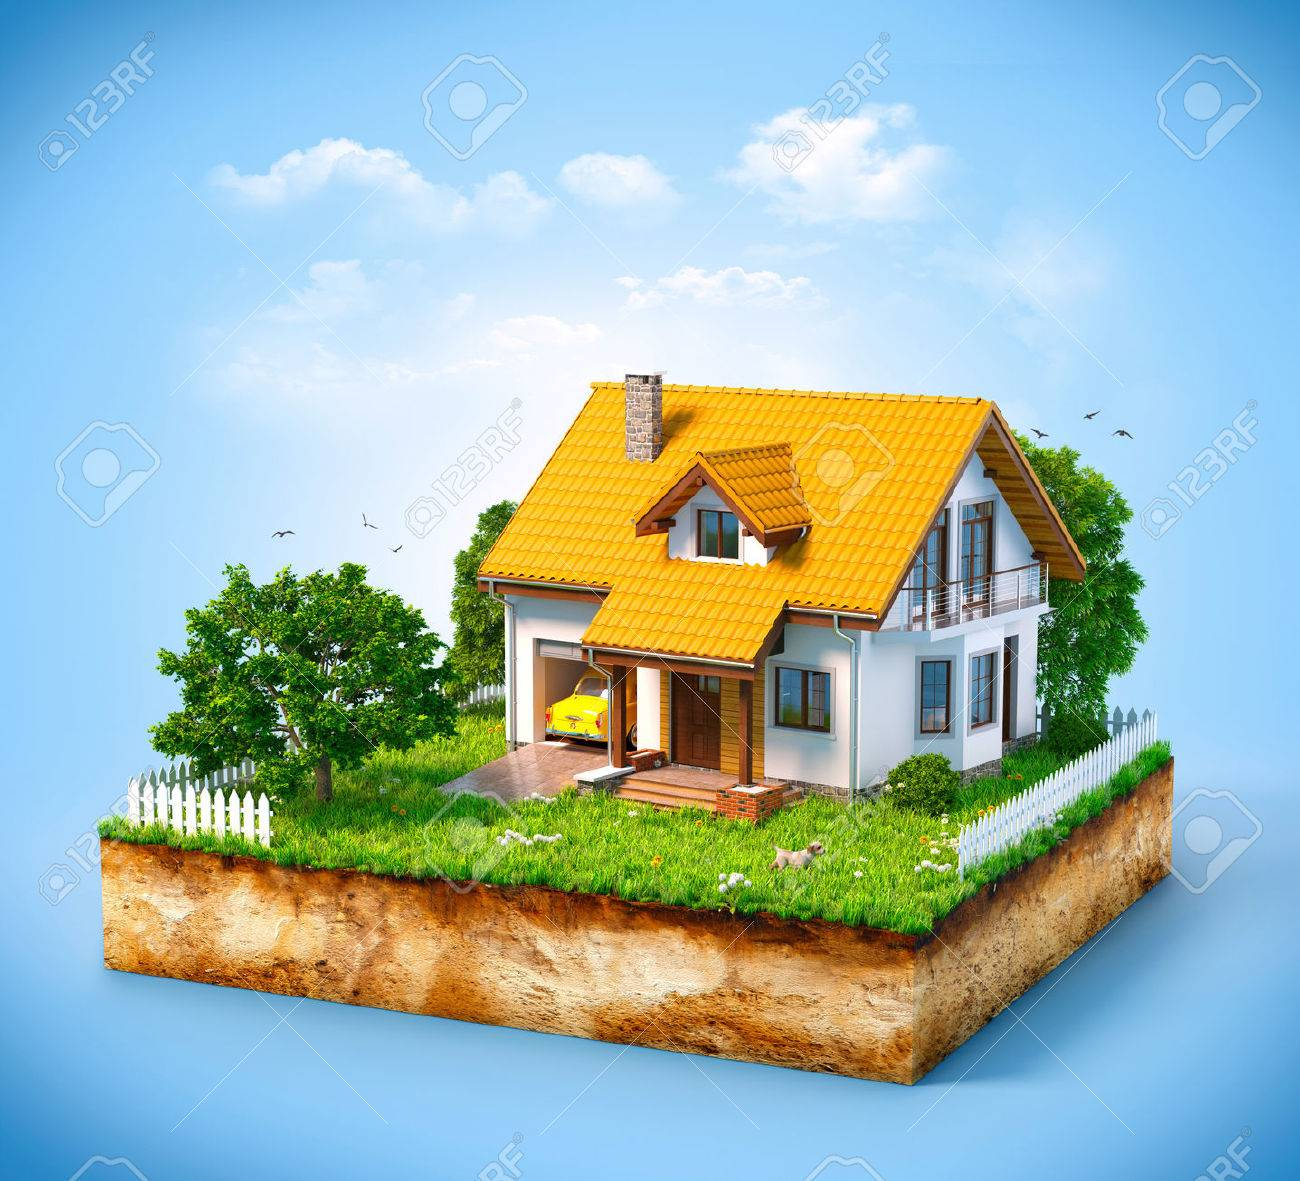 White house on a piece of earth with garden and trees. - 38072942